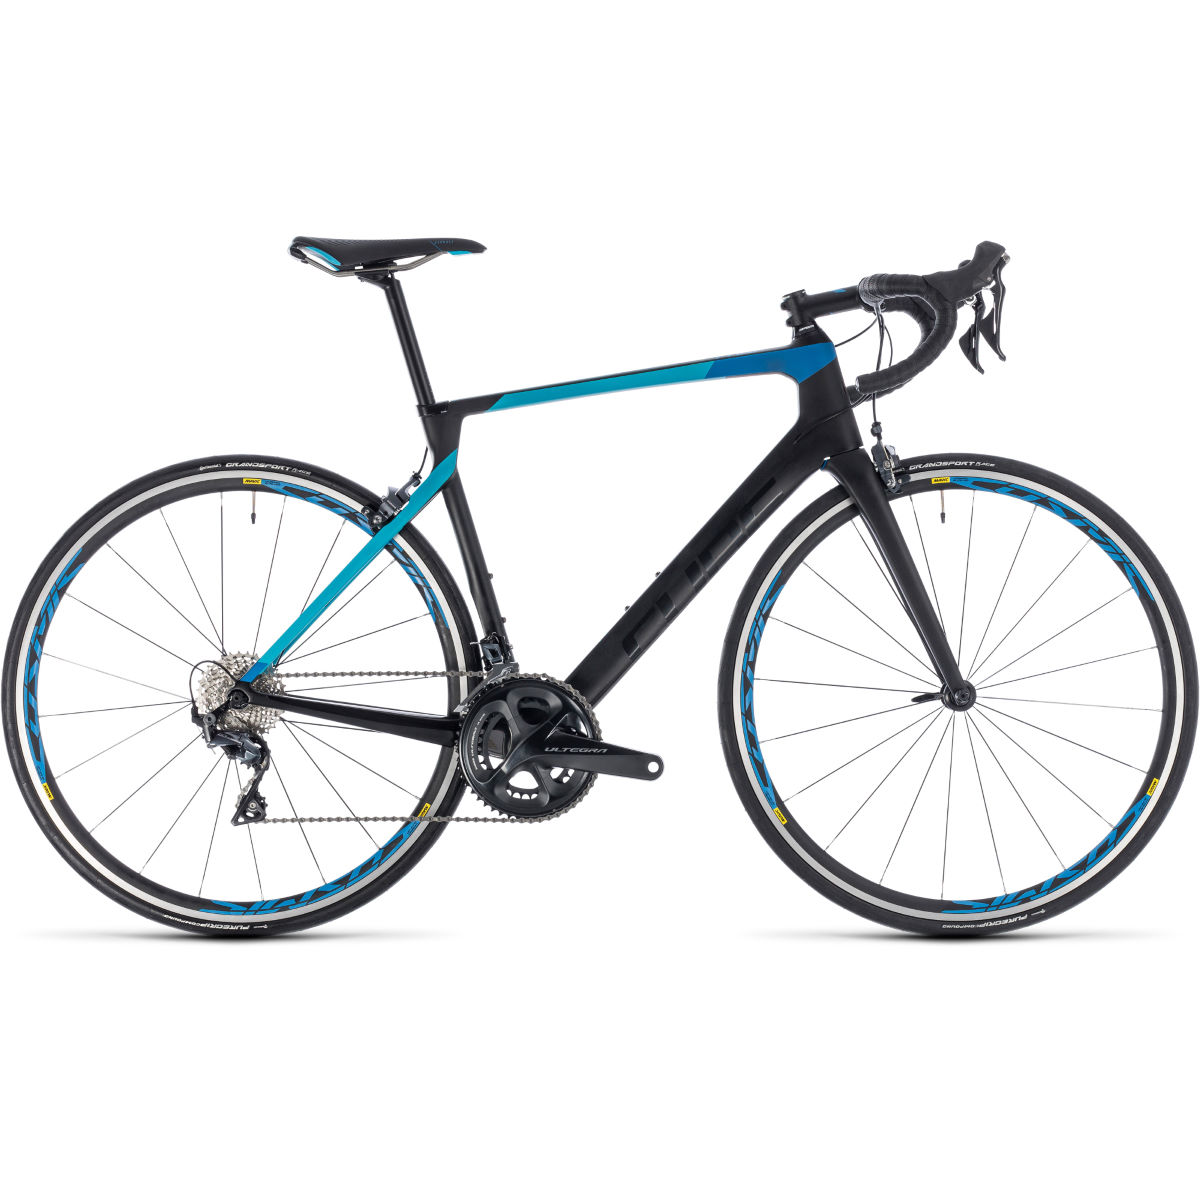 Cube Agree C:62 Pro Road Bike - Bicicletas de carretera